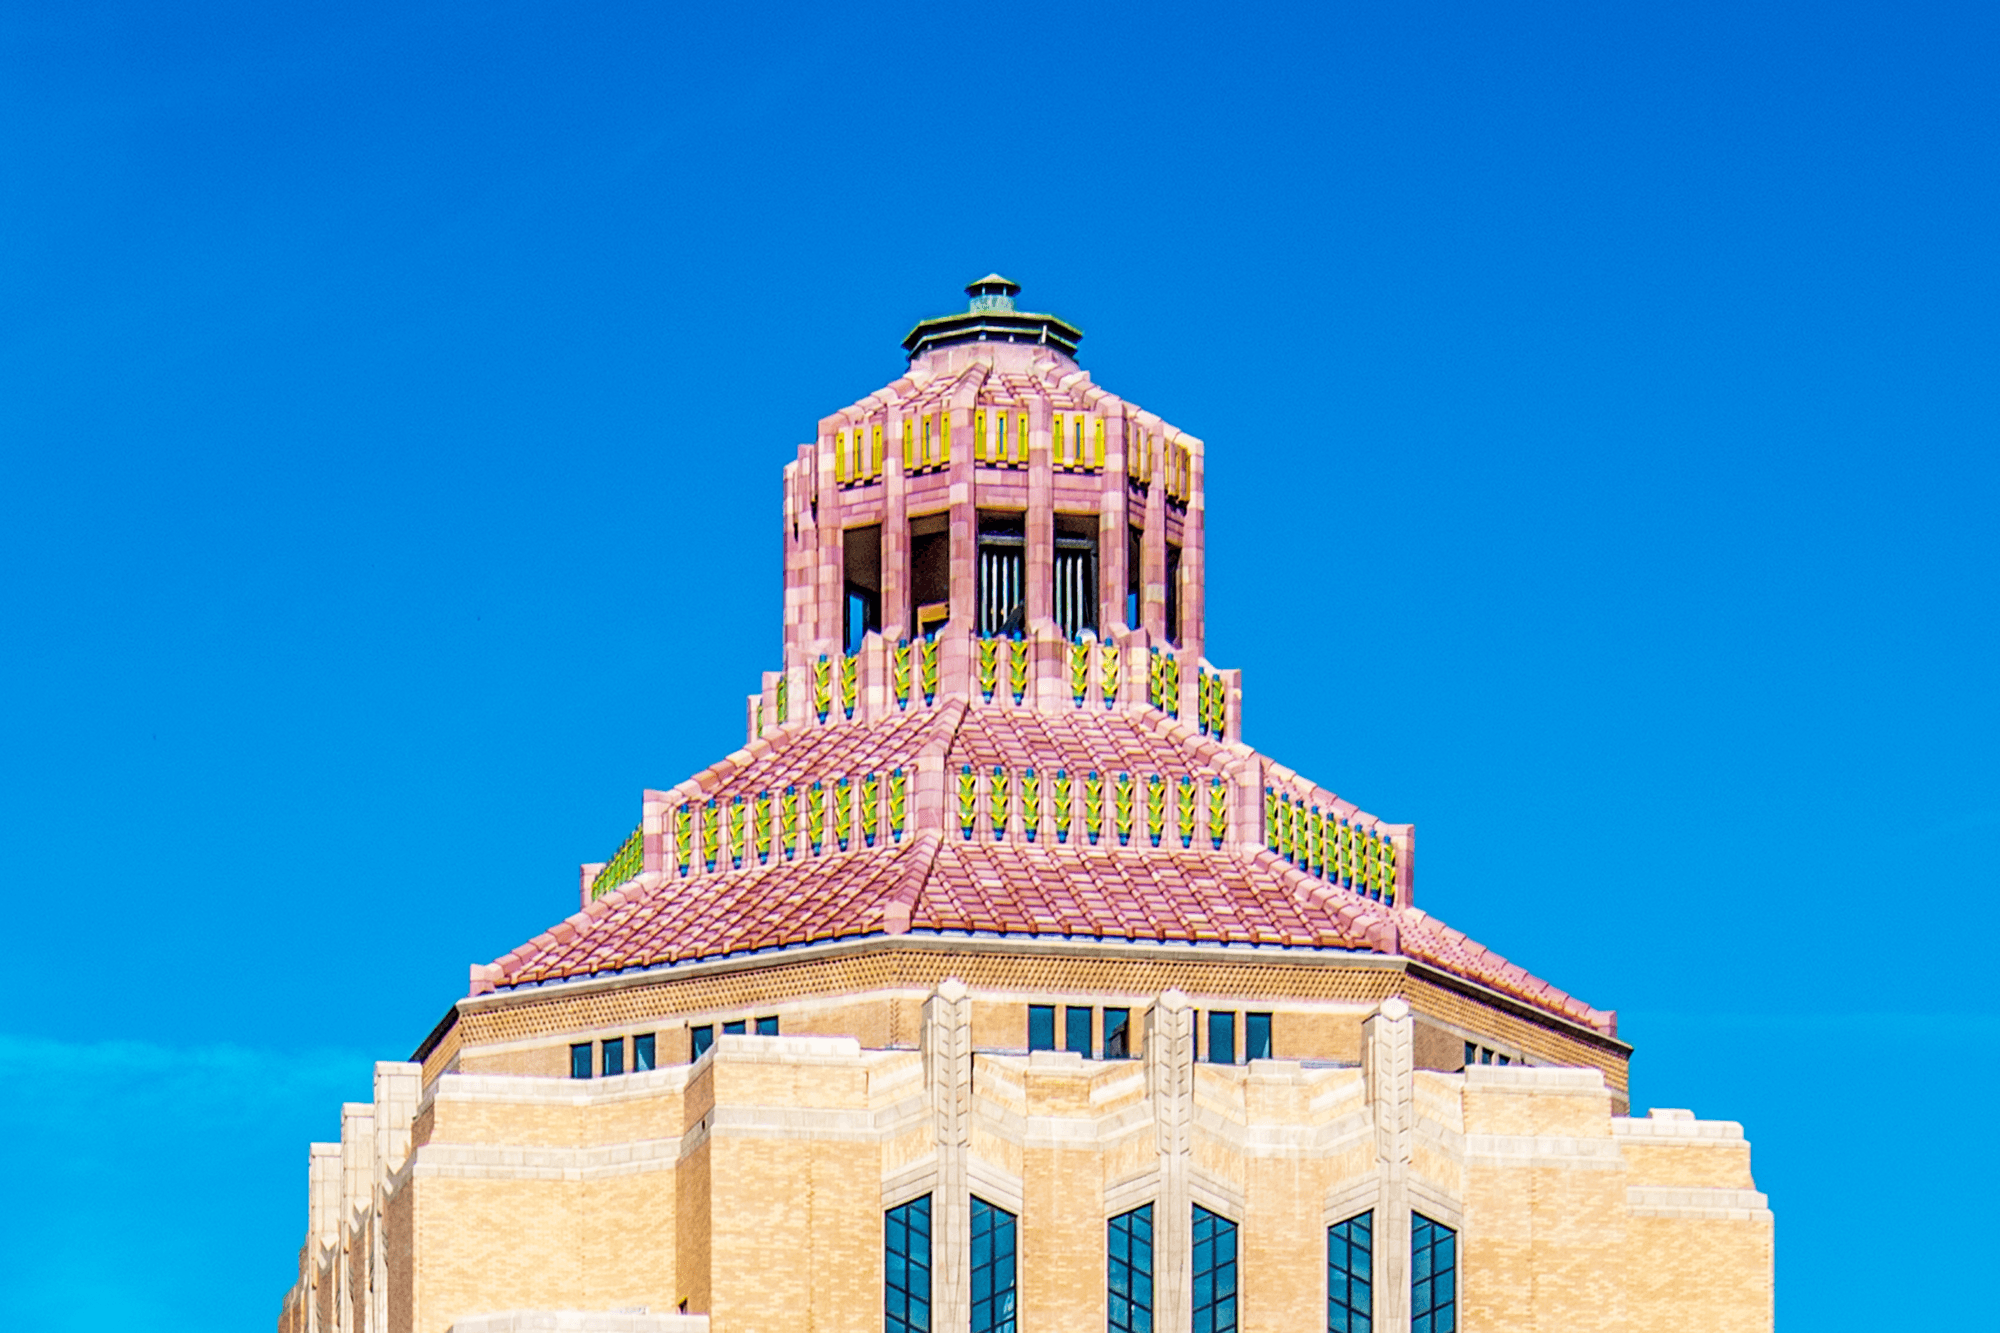 Each roof segment connects through a vertical band, each with green, blue and gold highlights. Douglas Ellington's signature feather-like ornaments can be found on several areas of the façade.